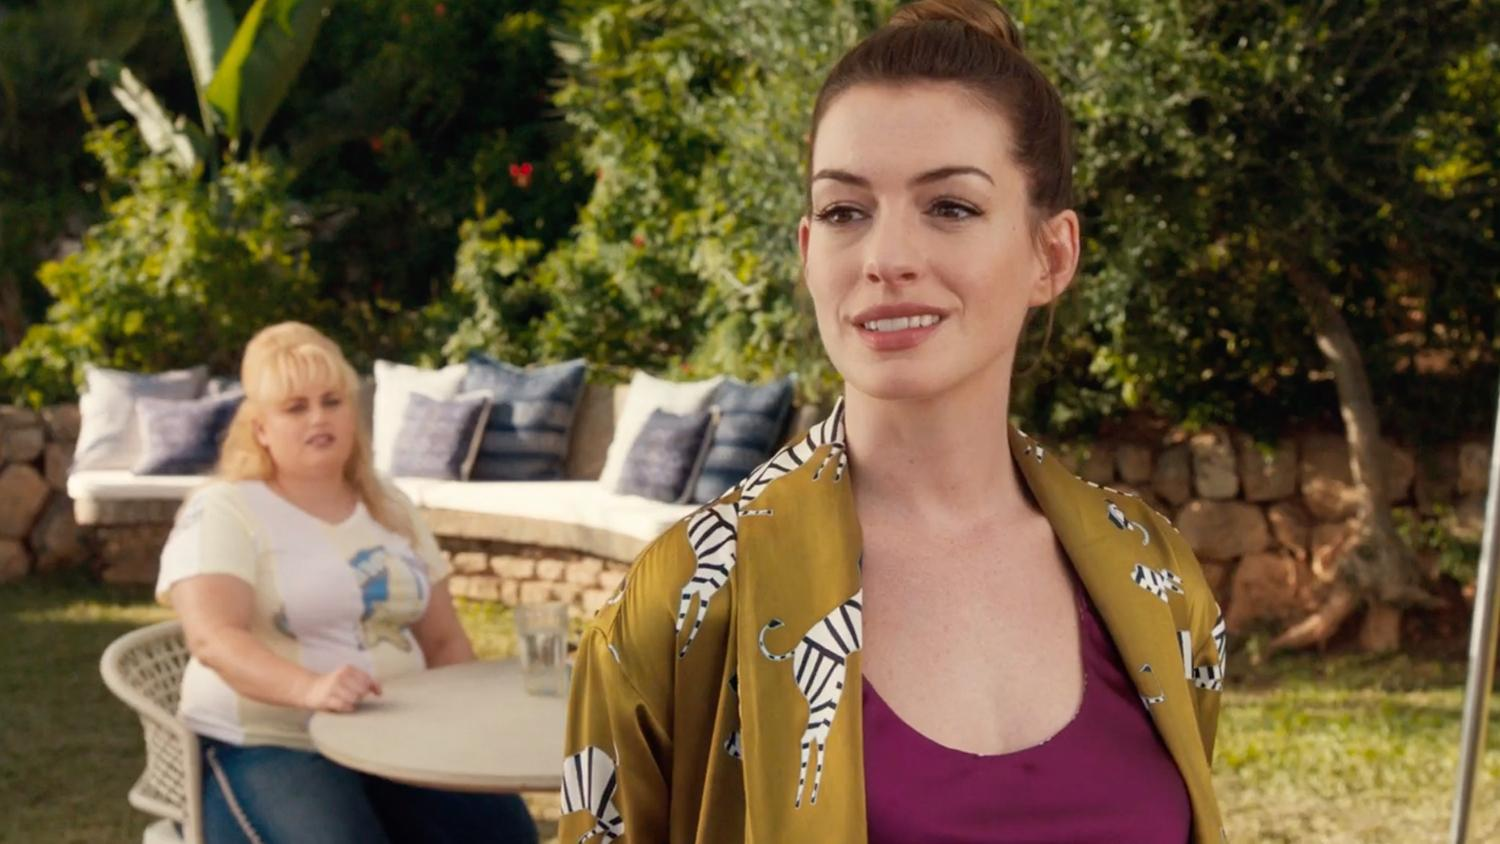 The Hustle Trailer Anne Hathaway And Rebel Wilson Lead New Take On Dirty Rotten Scoundrels Movies Empire